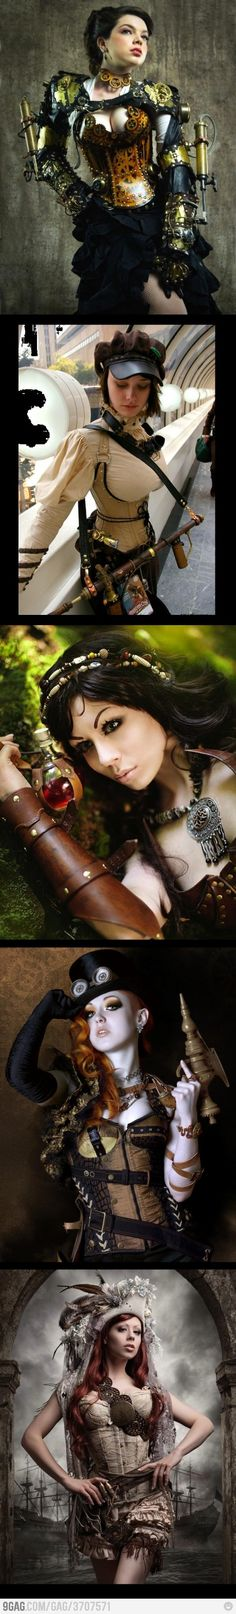 geek, outfits, cosplay, costumes, steampunk fashion